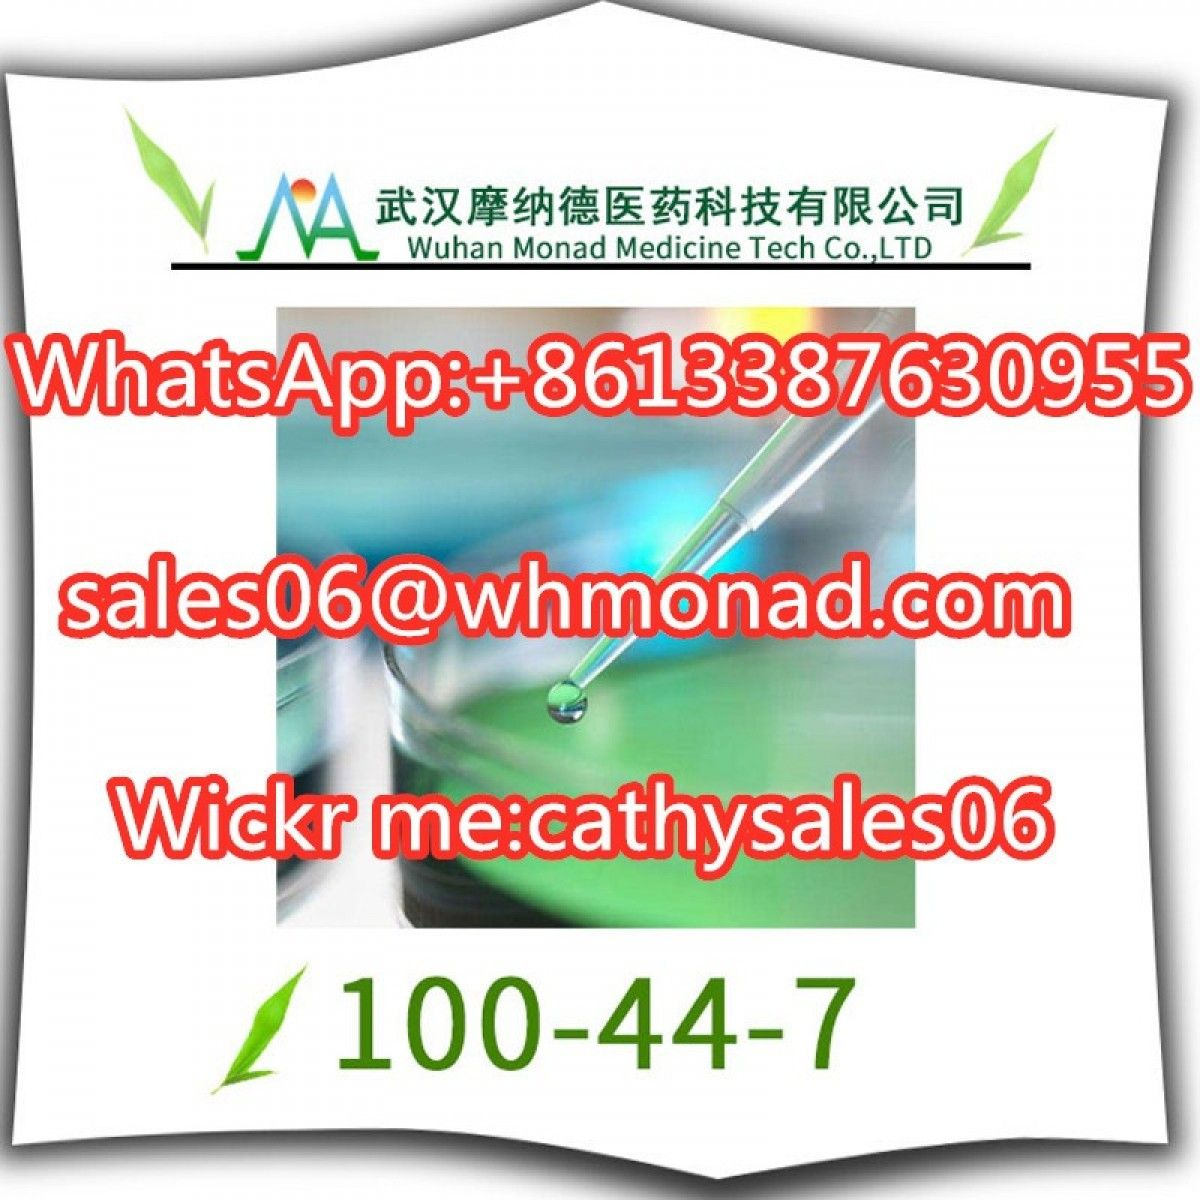 Colorless liquid CAS NO. 100-44-7 benzyl chloride WhatsApp:+8613387630955